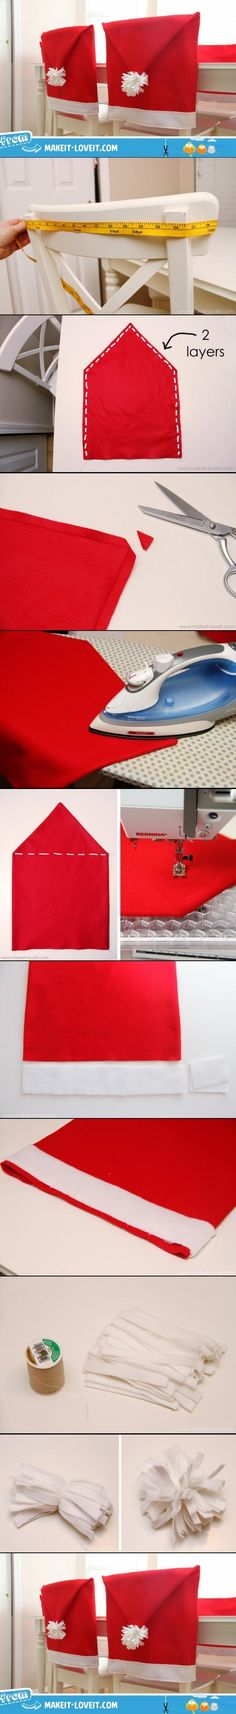 kirklands christmas chair covers rail tile at lowes silla niño | mari pinterest covers, elves and xmas